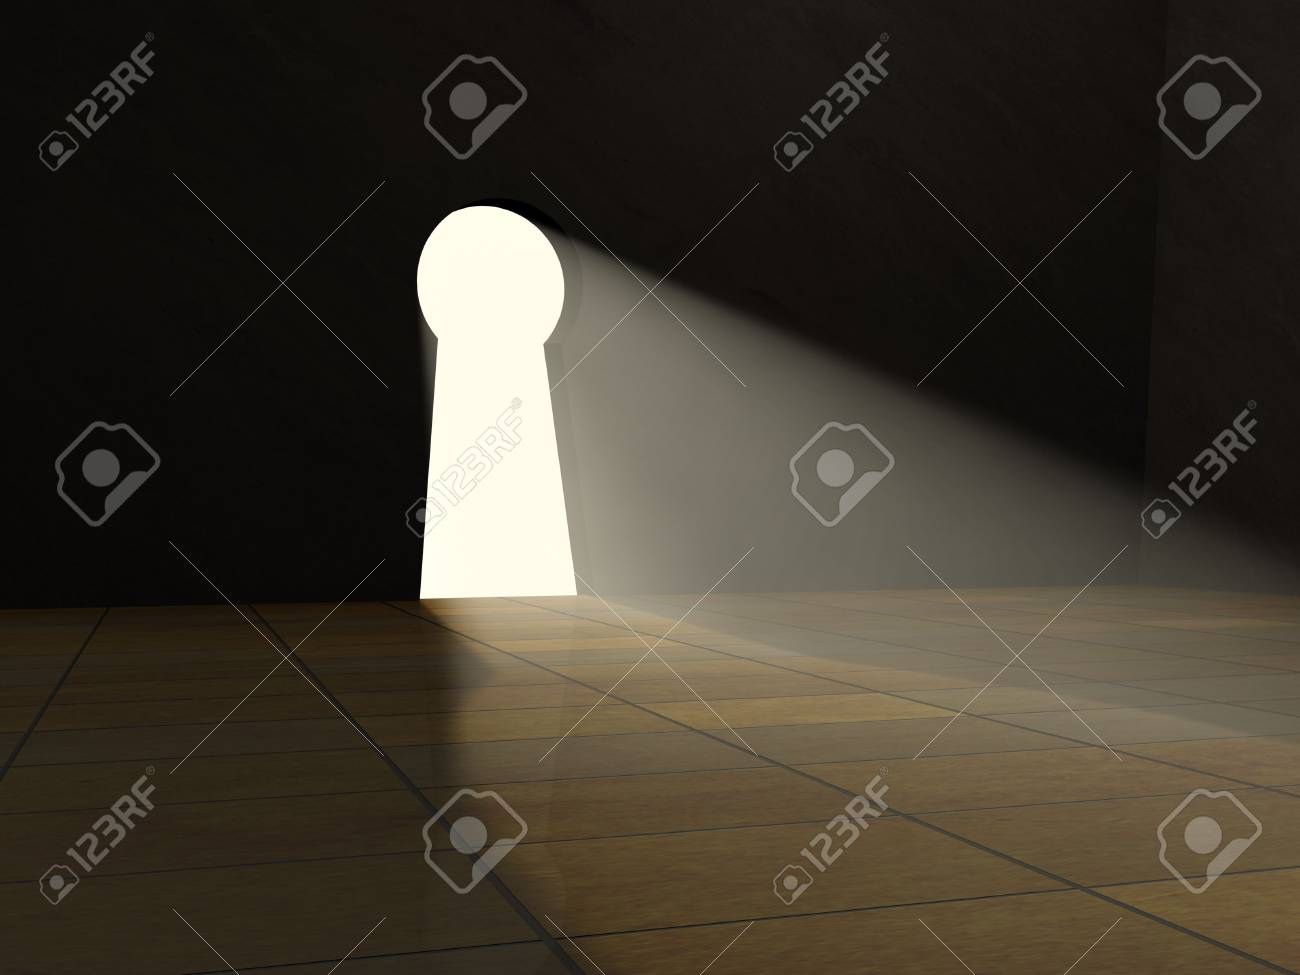 Conceptual image - way to freedom Stock Photo - 5083249